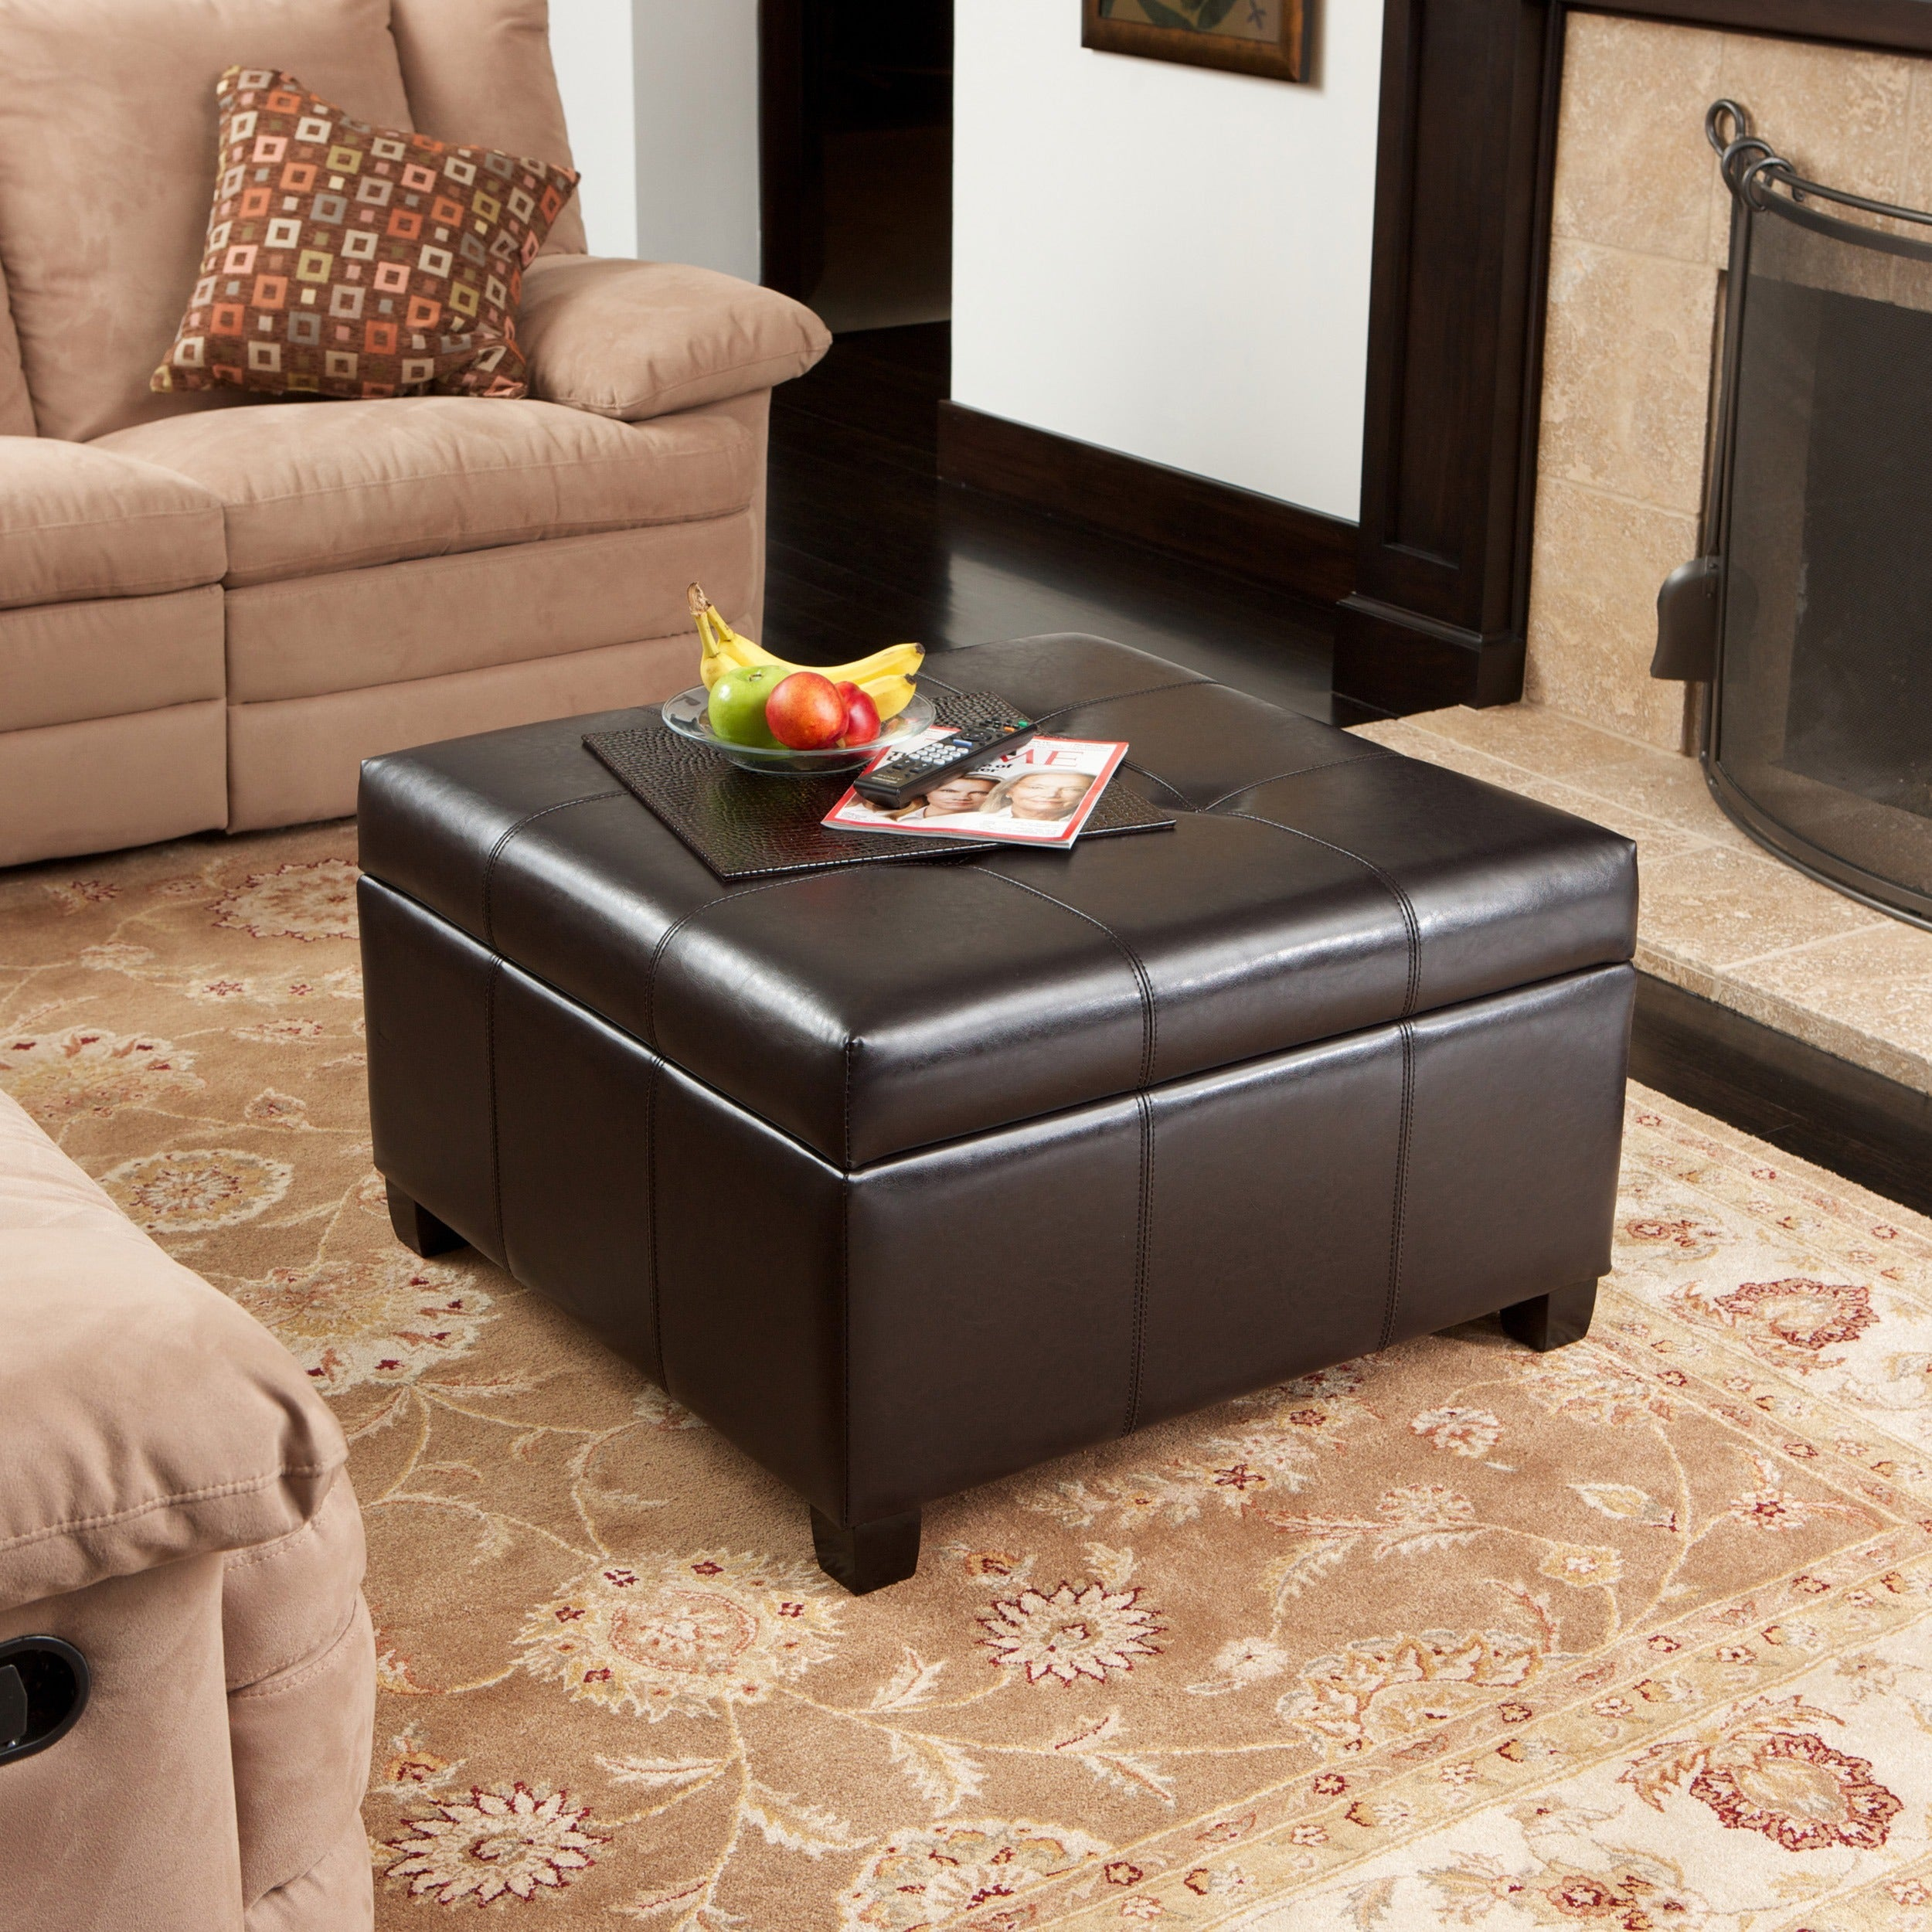 Buy Leather Ottomans & Storage Ottomans Online at Overstock | Our